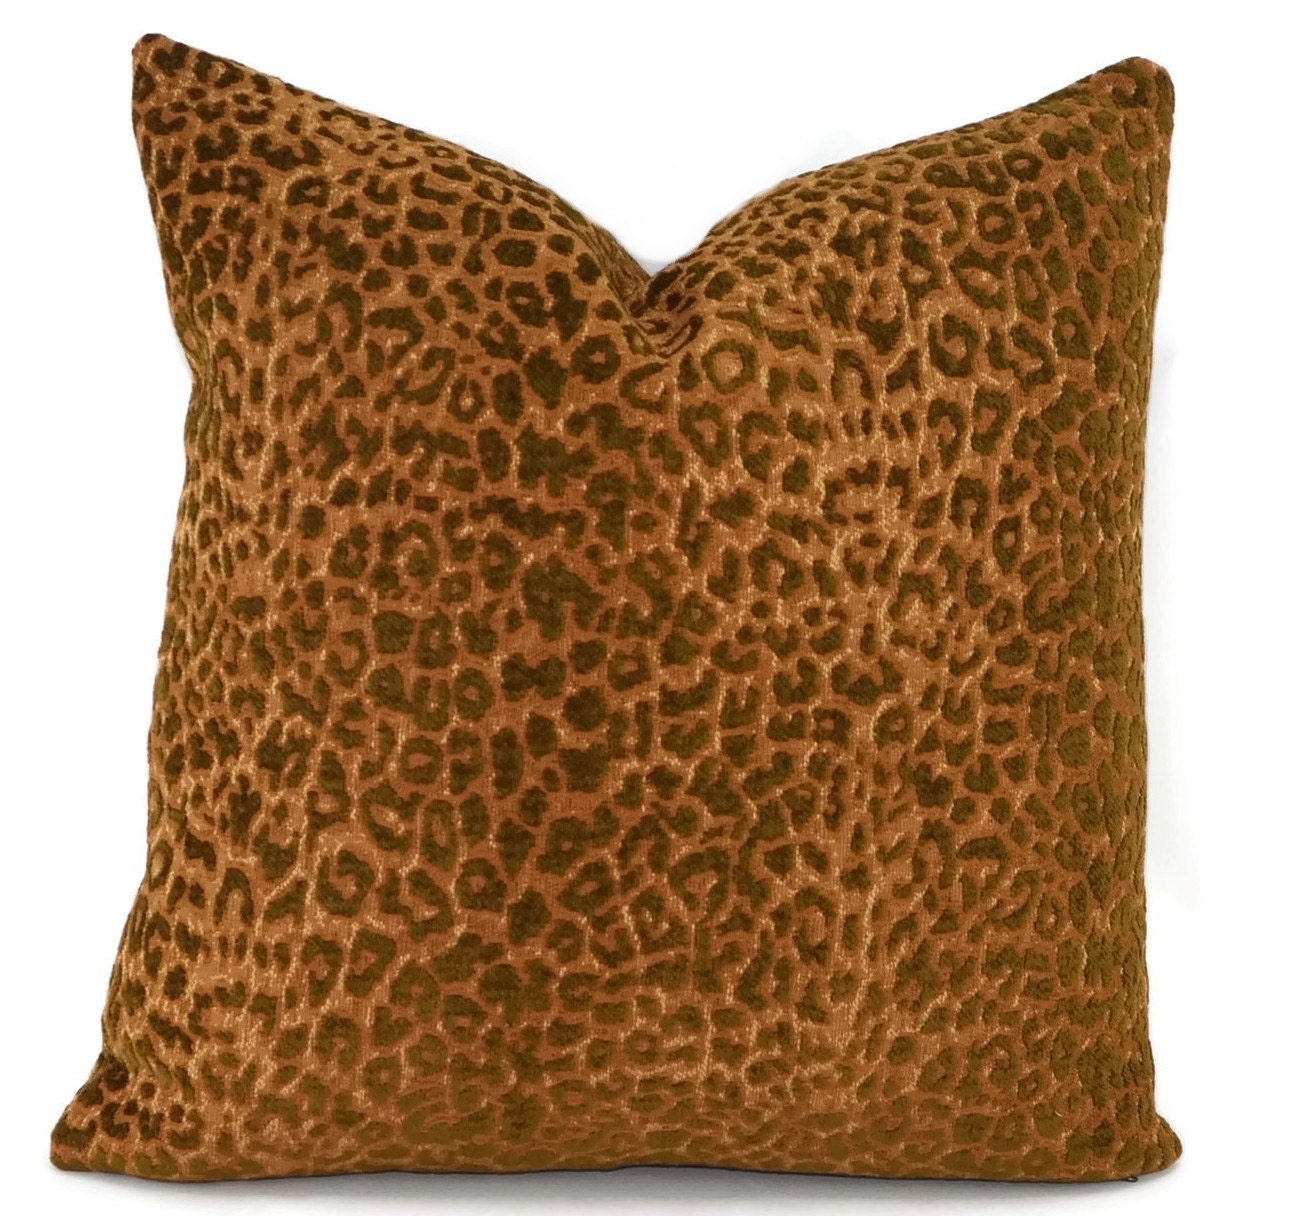 Gold Brown Throw Pillows : Brown & Gold Chenille Animal Throw Pillow Cover 16x16 Throw